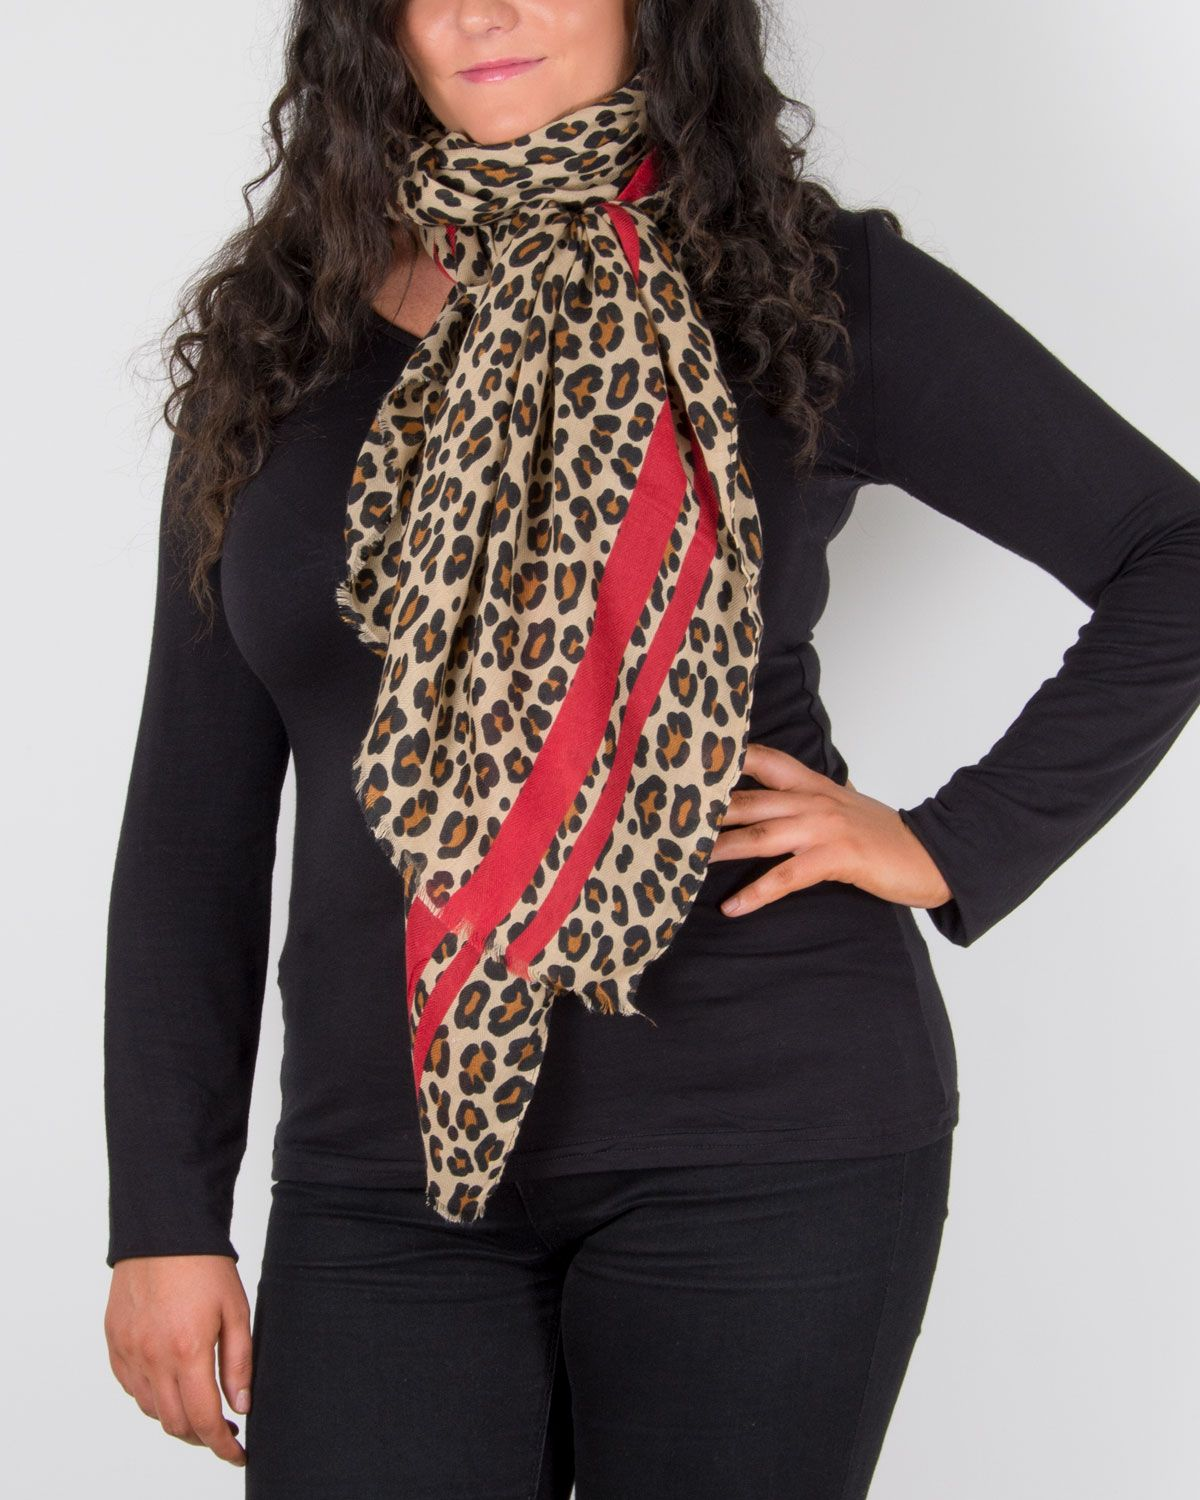 Scarf Room - The No 37 Label Large Leopard Print Scarf b